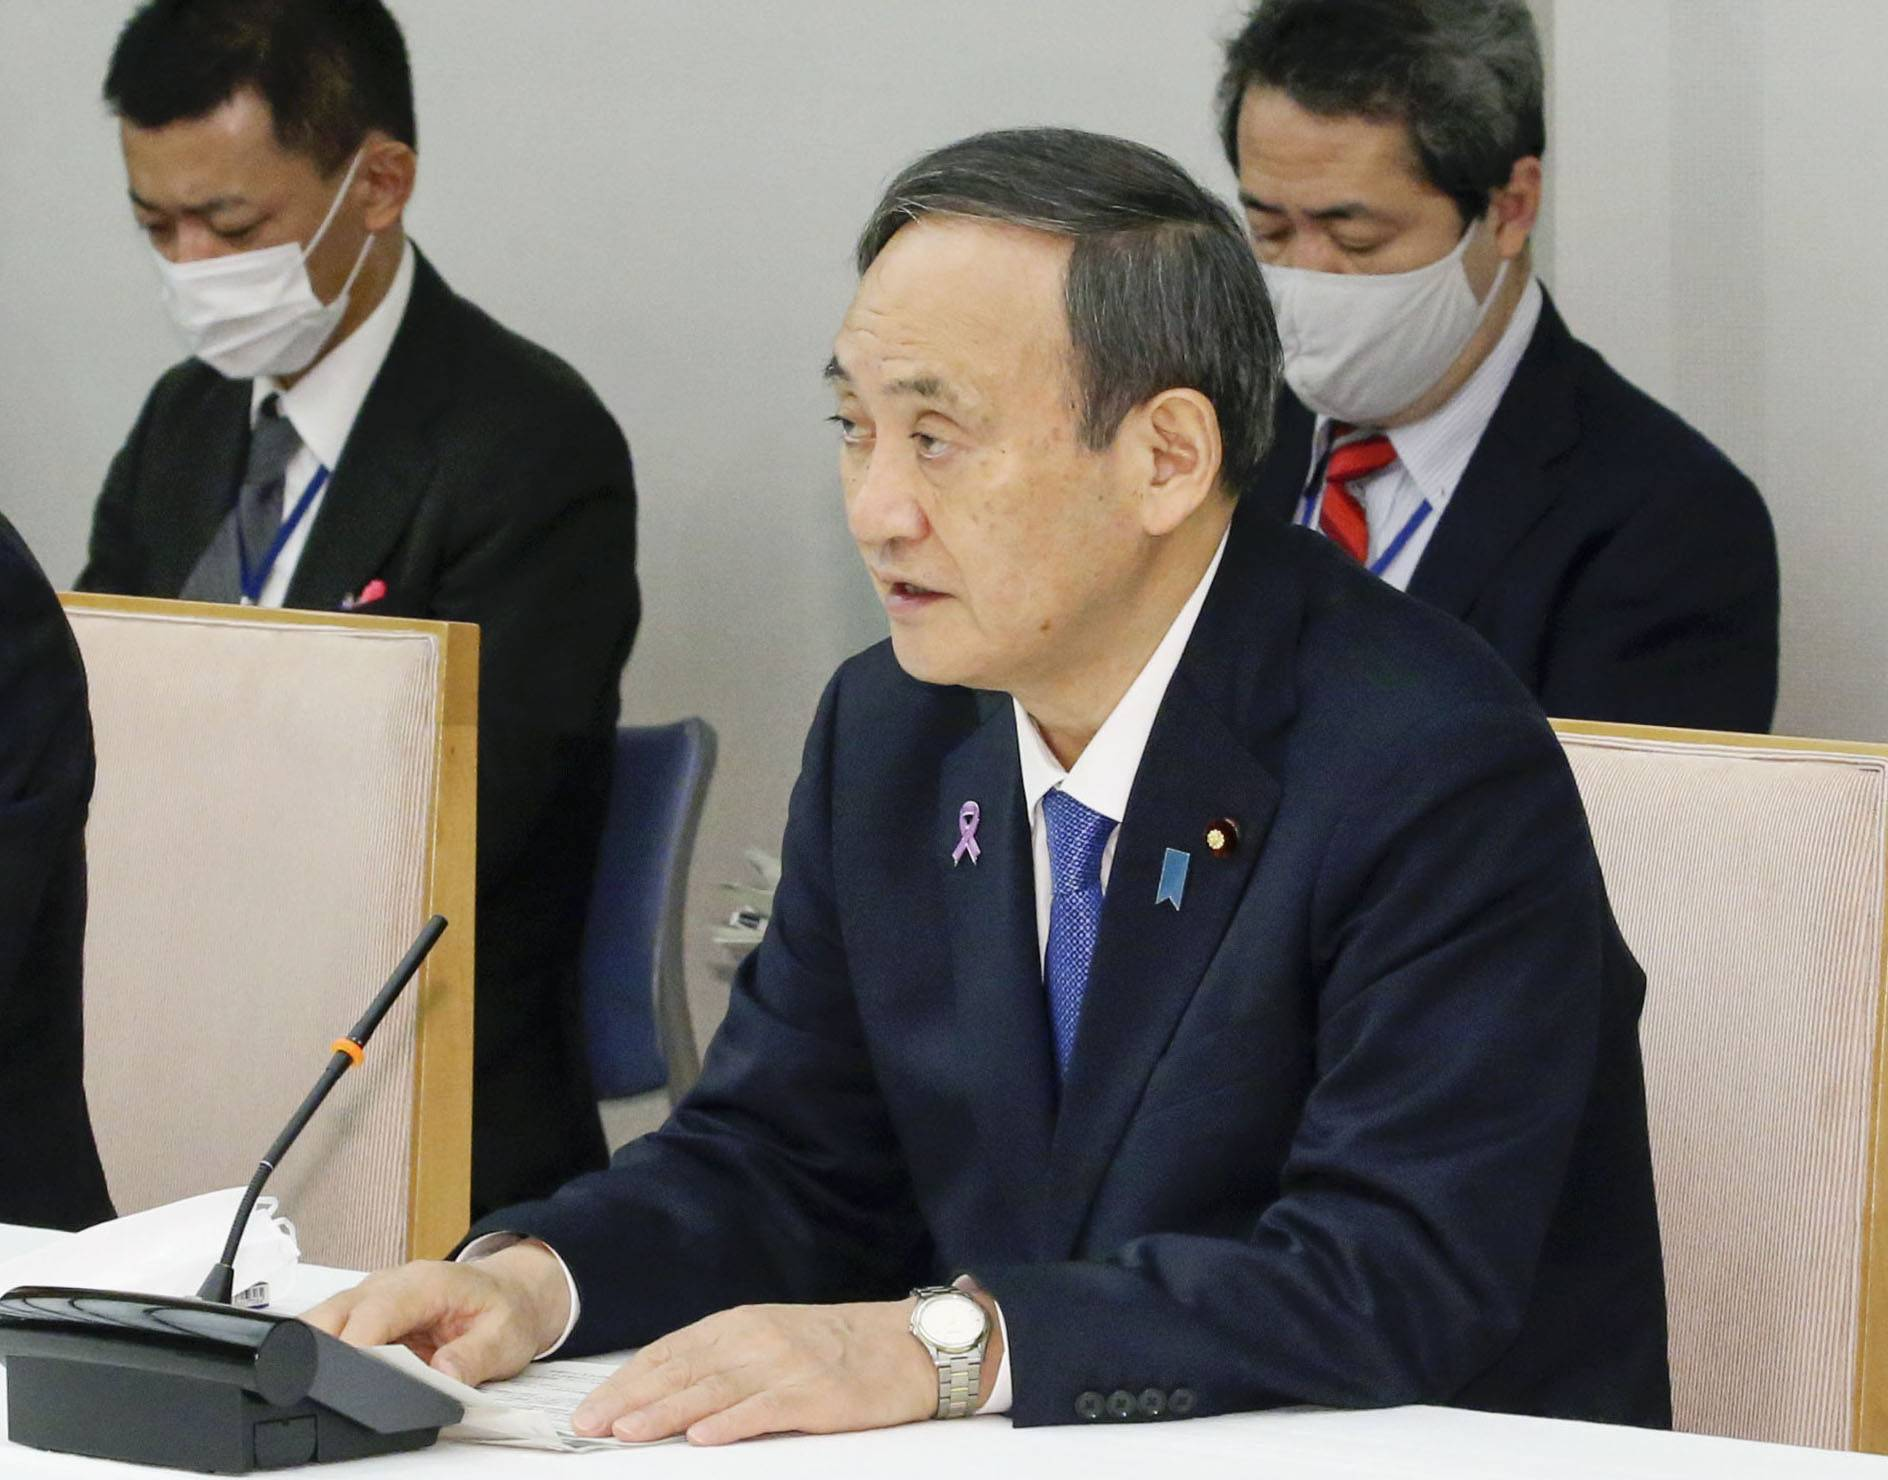 It appears that some in the Liberal Democratic Party are considering convening the regular Diet session earlier than usual in order to leave room for Prime Minister Yoshihide Suga to dissolve the House of Representatives. | KYODO